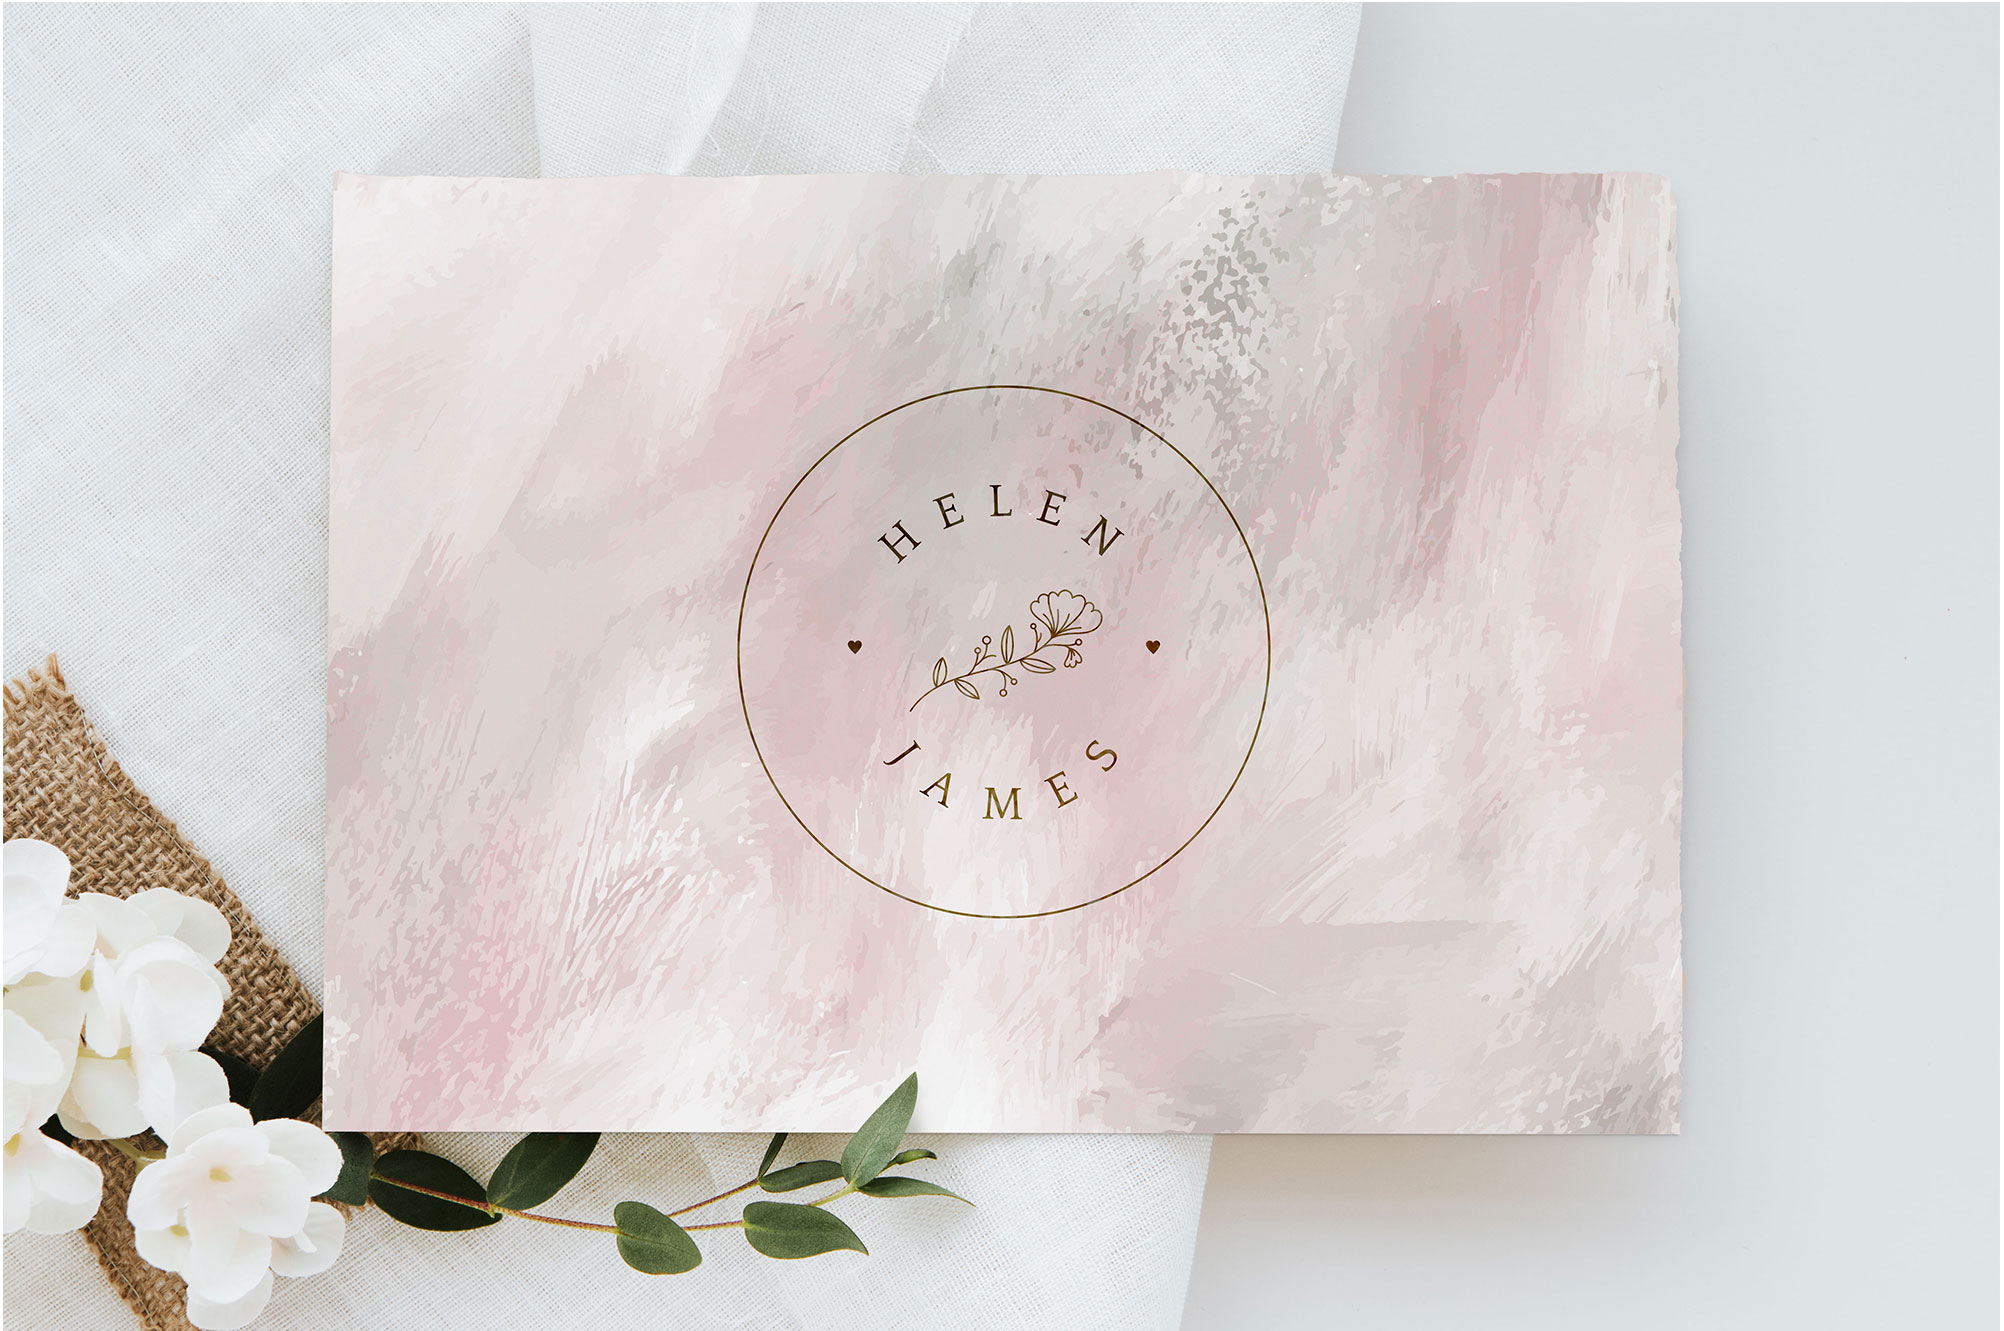 Watercolor Abstract Backgrounds